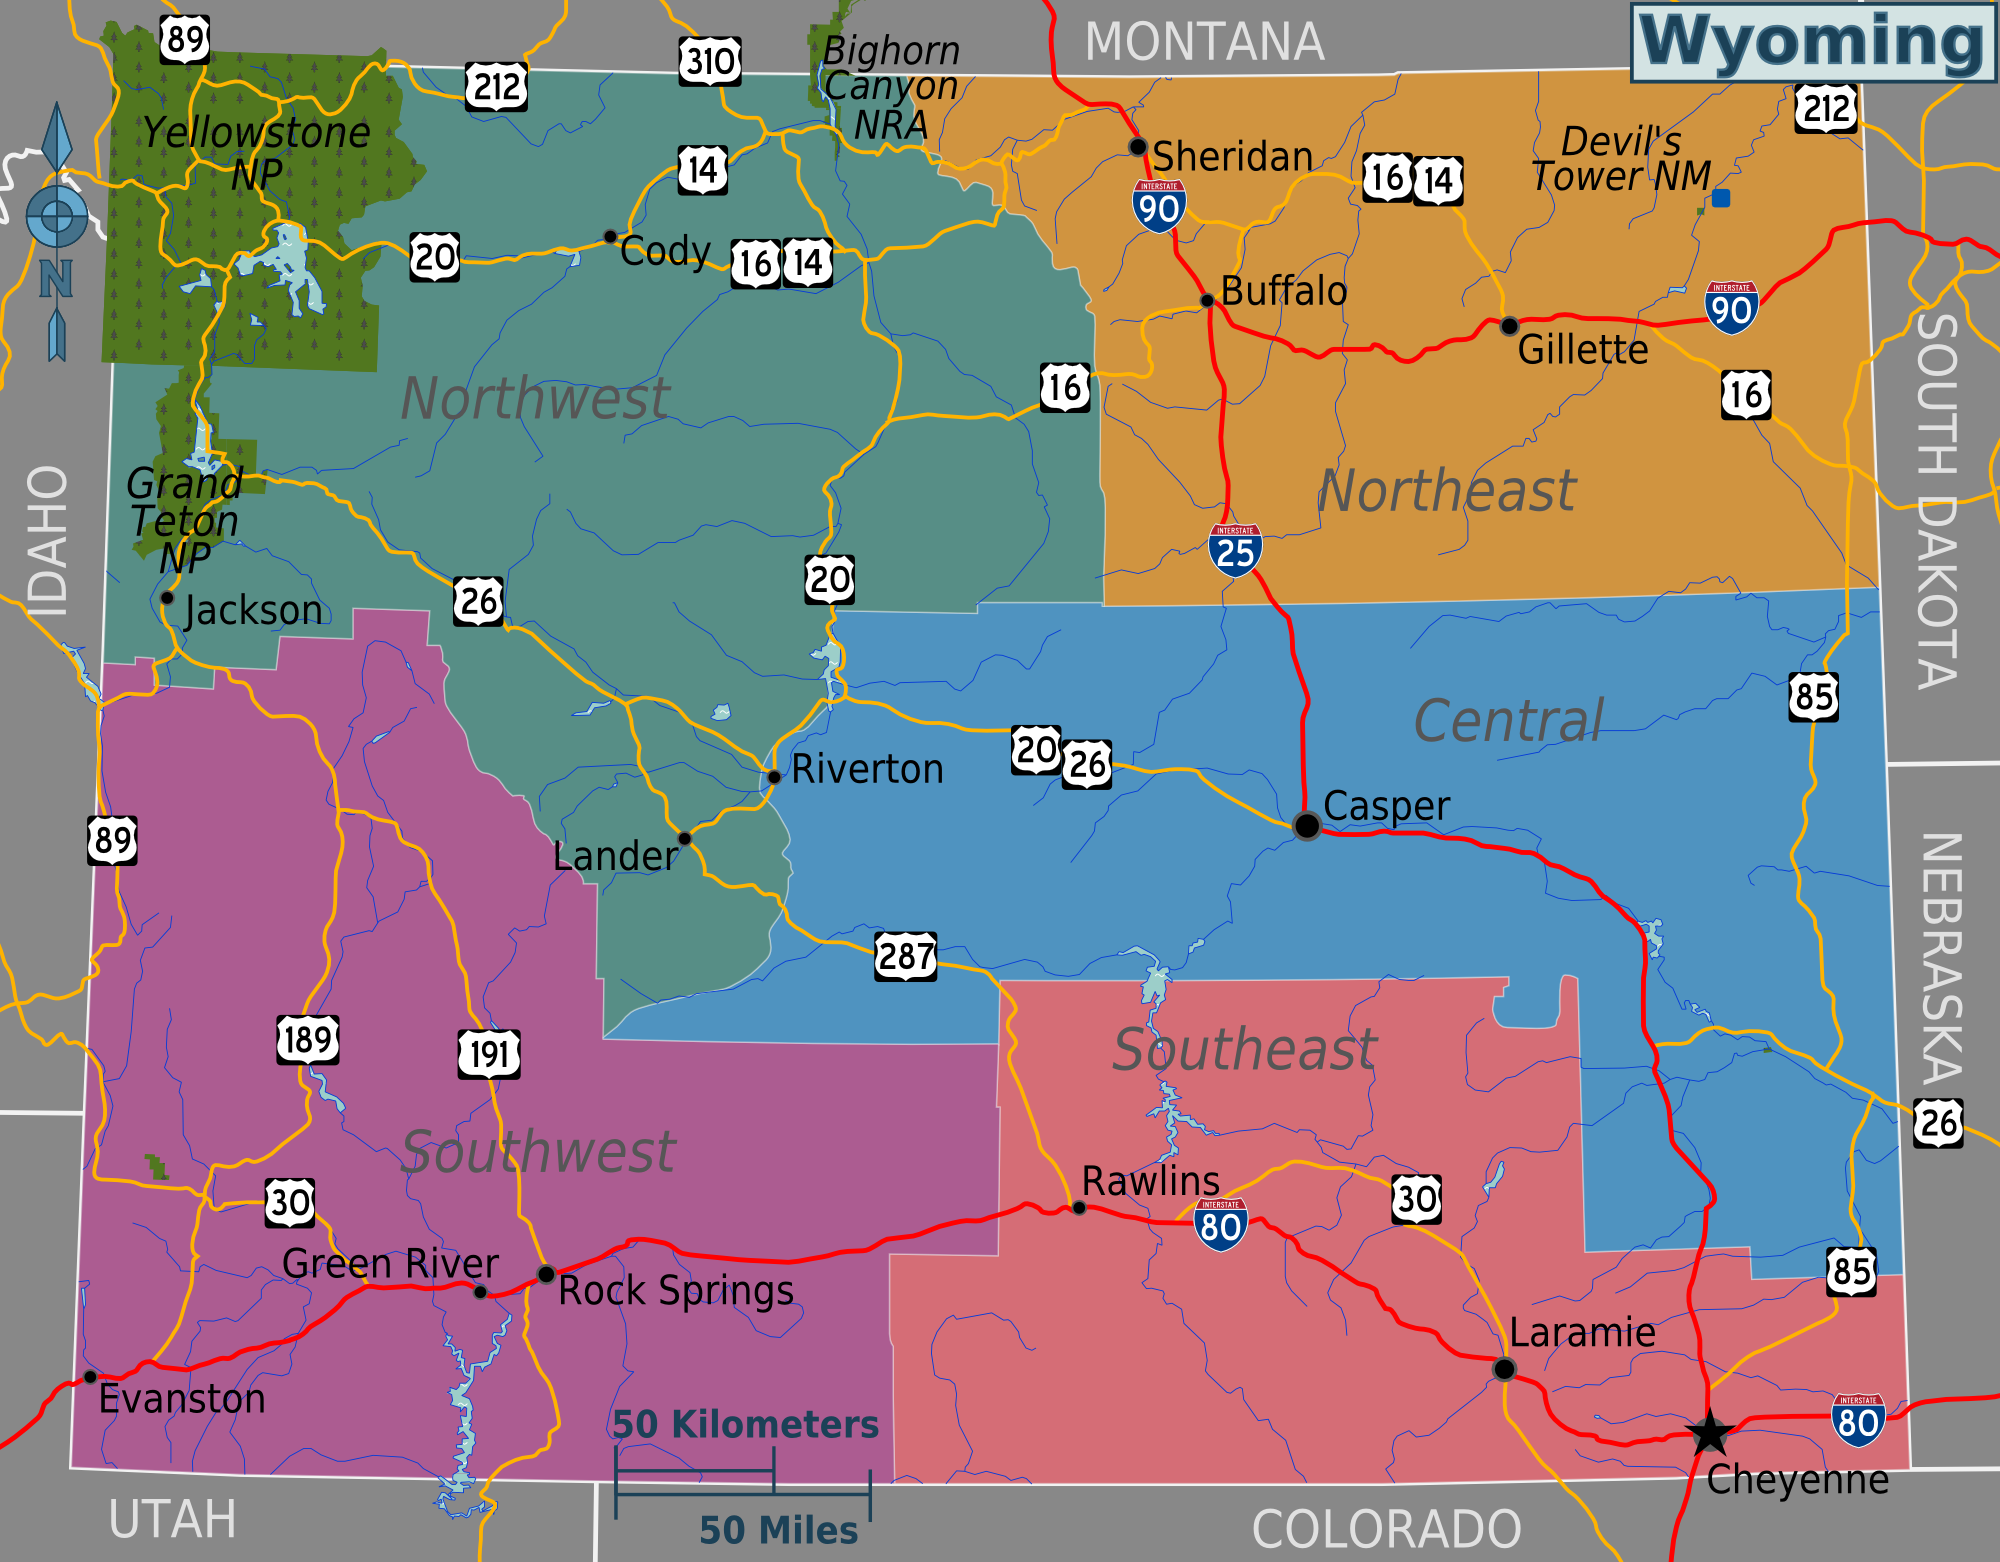 map of colorado with File Wyoming Regions Map on Dover likewise Map further Thornton Heath as well File wyoming regions map additionally Threats Solutions.